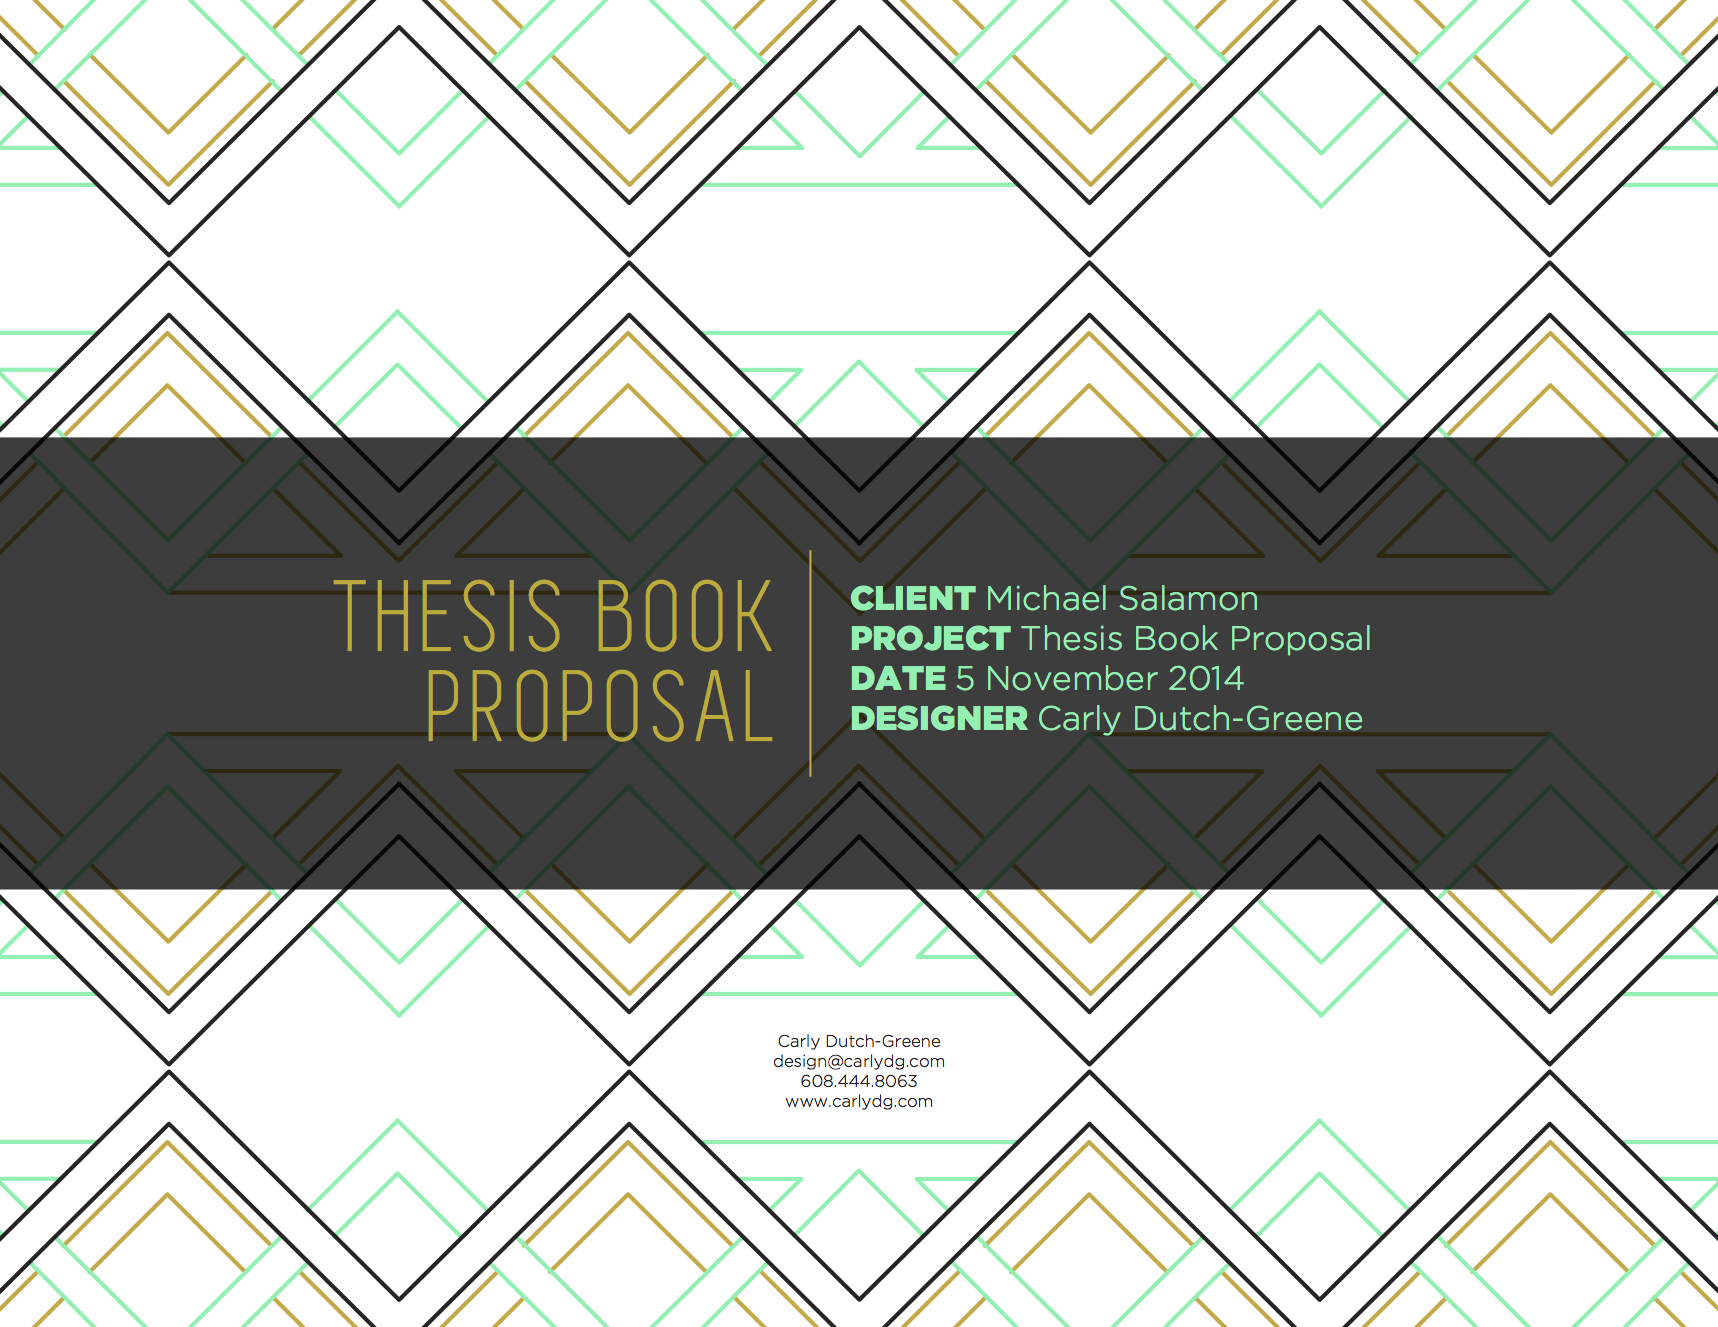 thesis process book template proposal